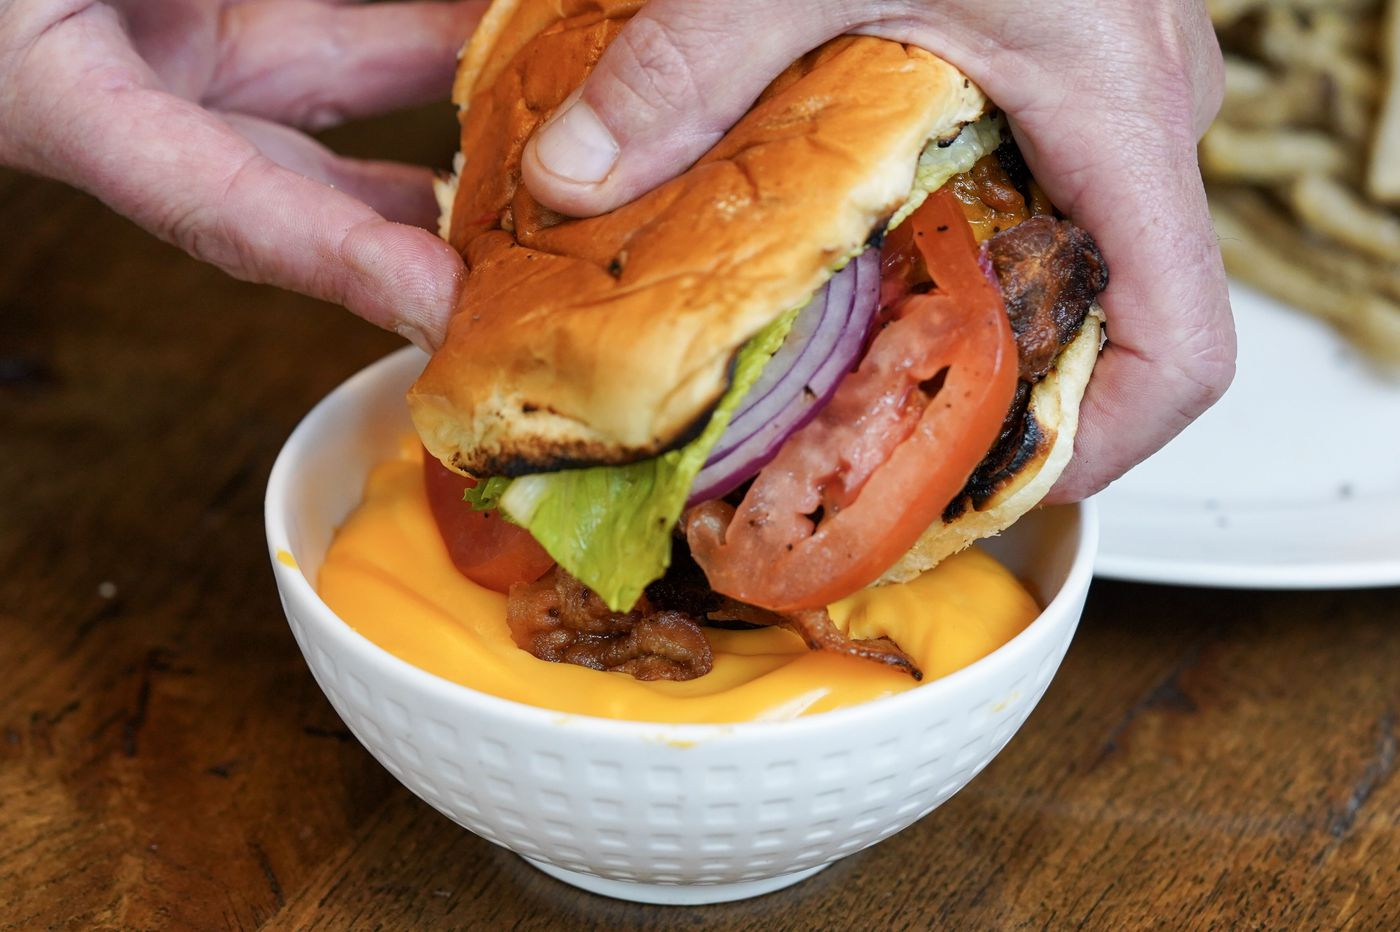 Free burgers at opening of Taps & Bourbon on Terrace in Manayunk